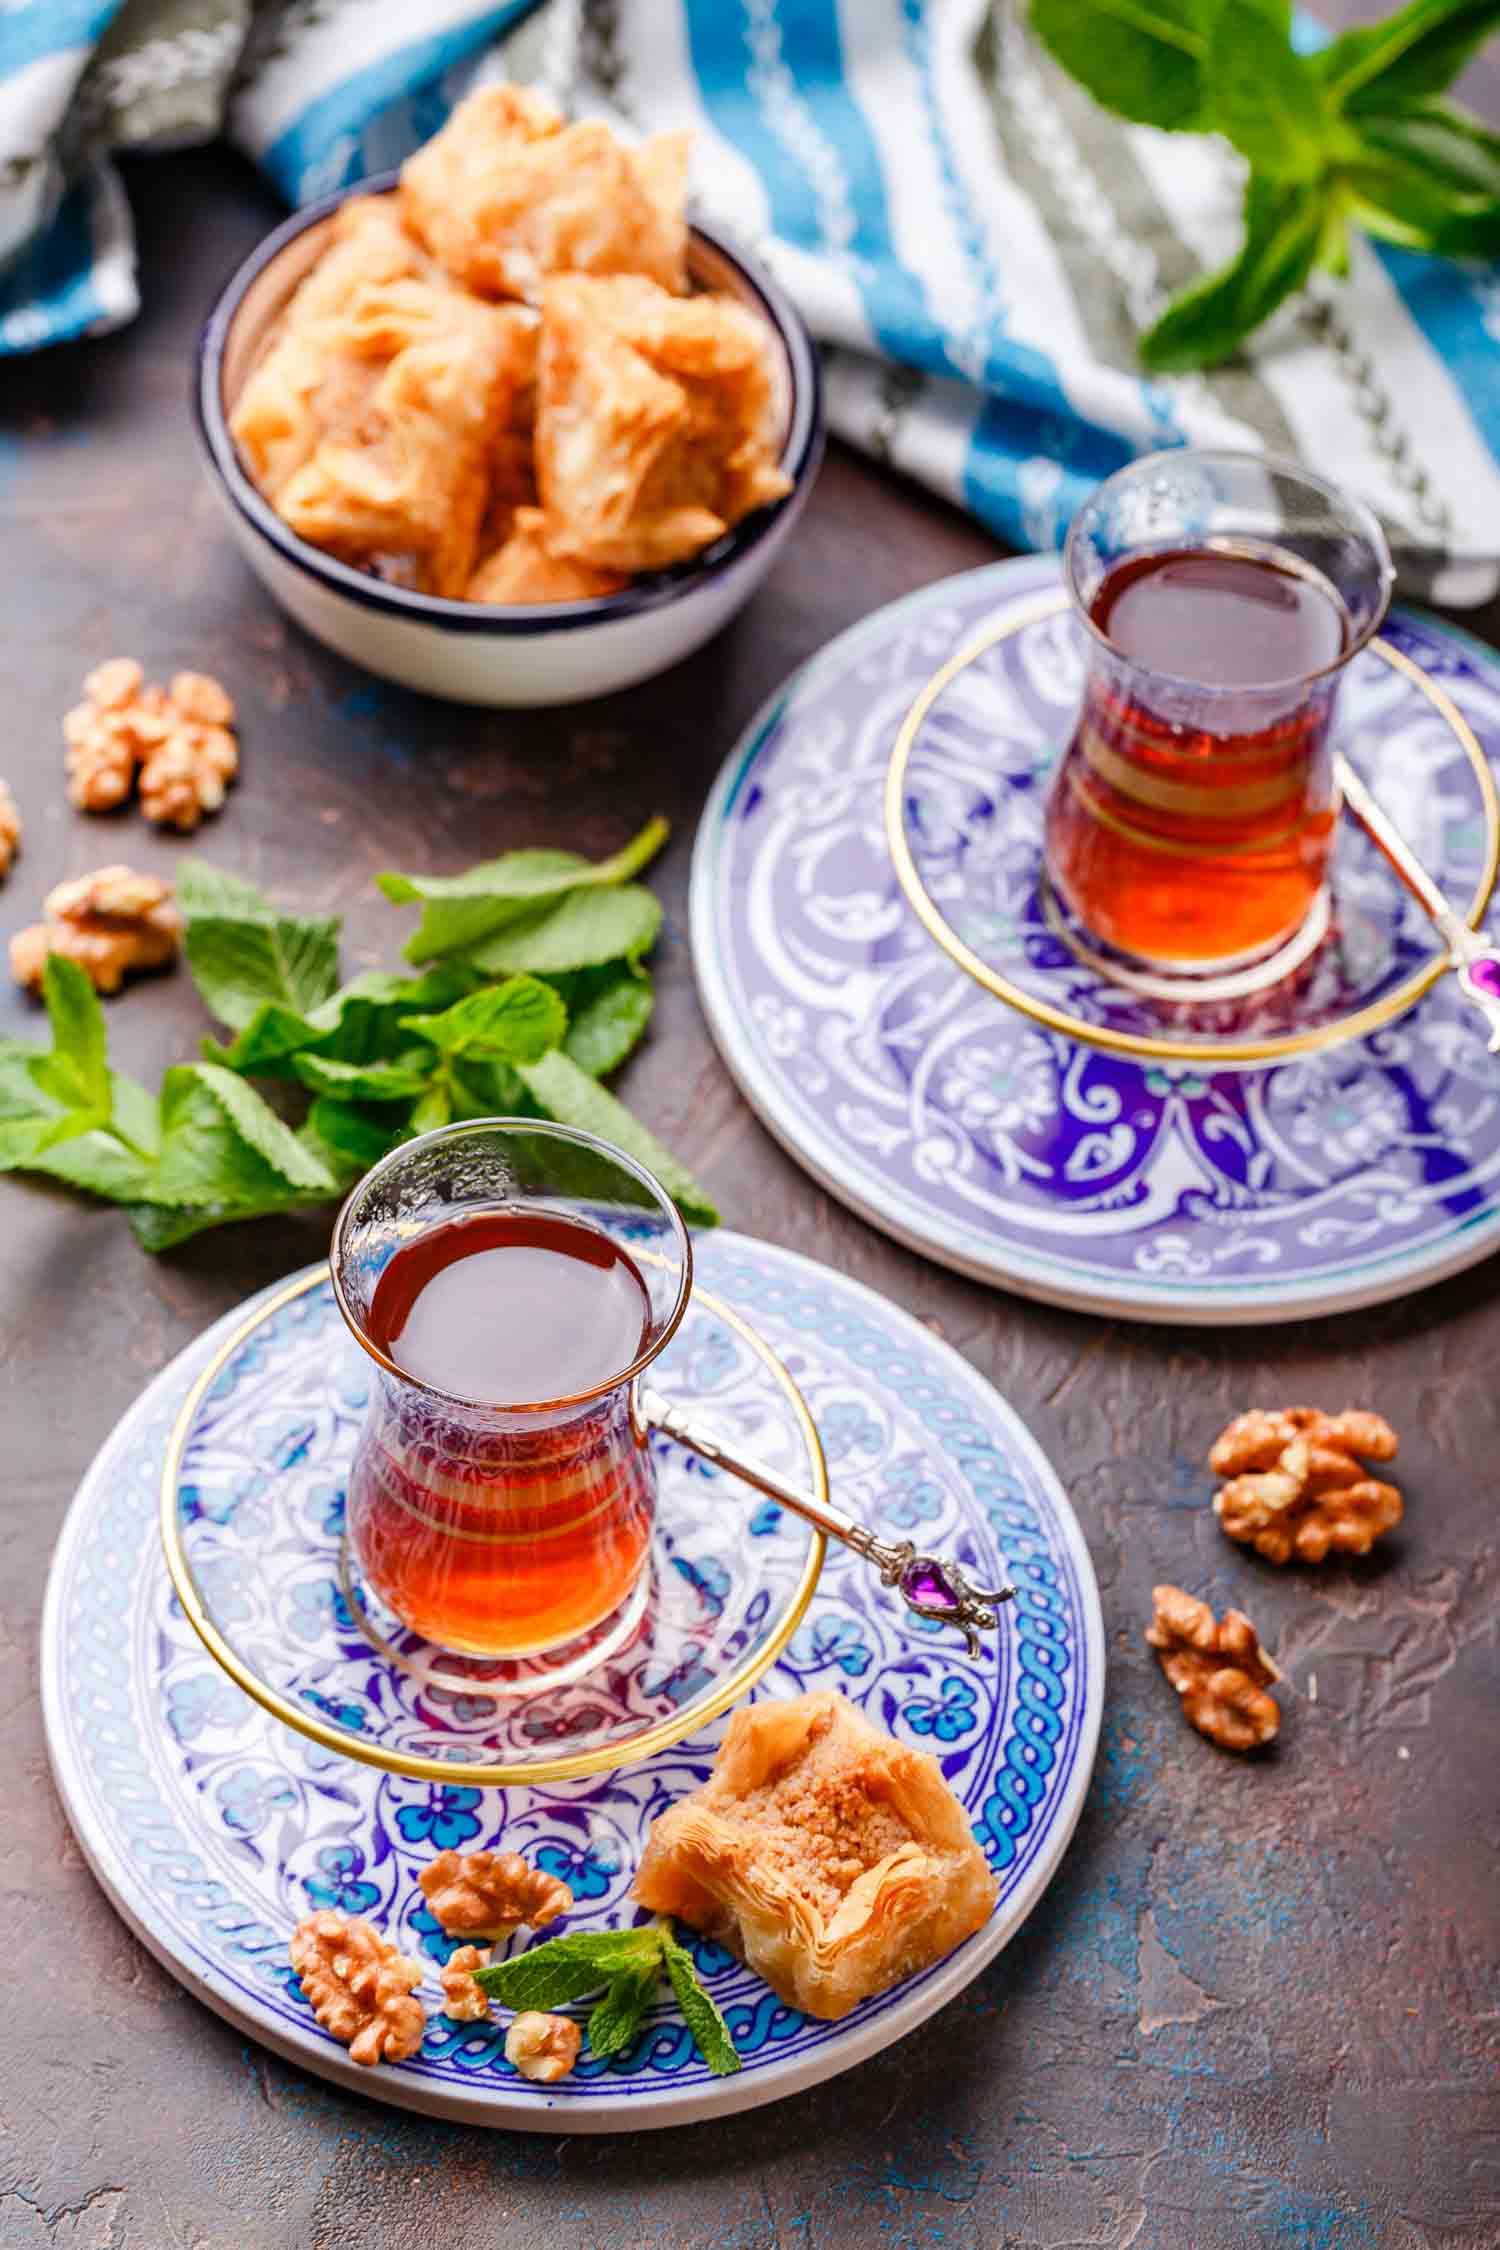 Middle Eastern or Arabic tea with mint in a traditional glass cup and Turkish sweetness Baklava. Ramadan kareem. Eid mubarak. Islamic holidays decoration.